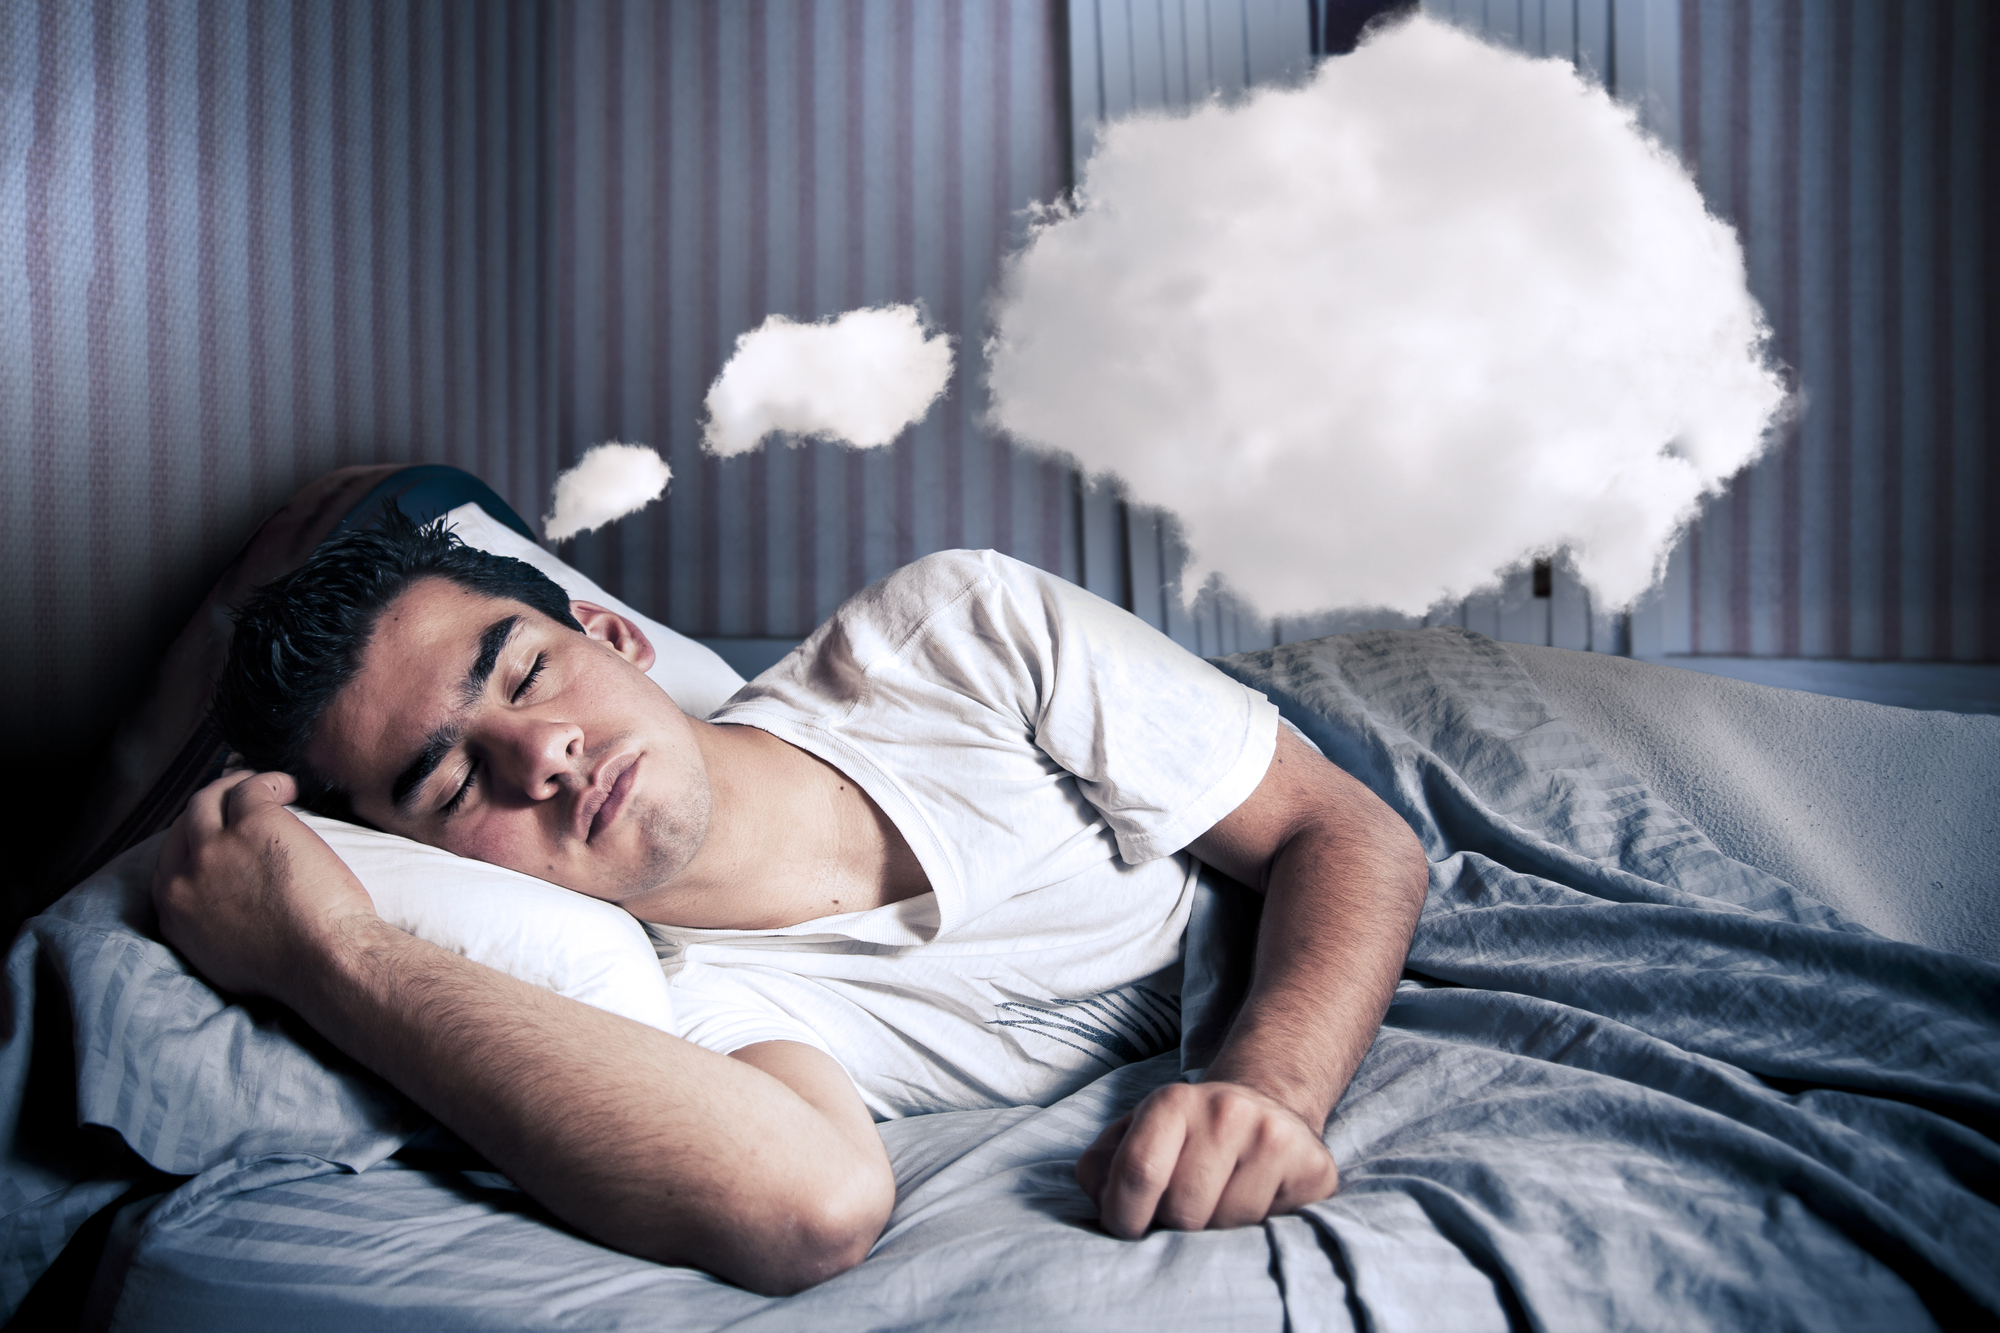 man-with-busy-mind-while-sleeping.jpg